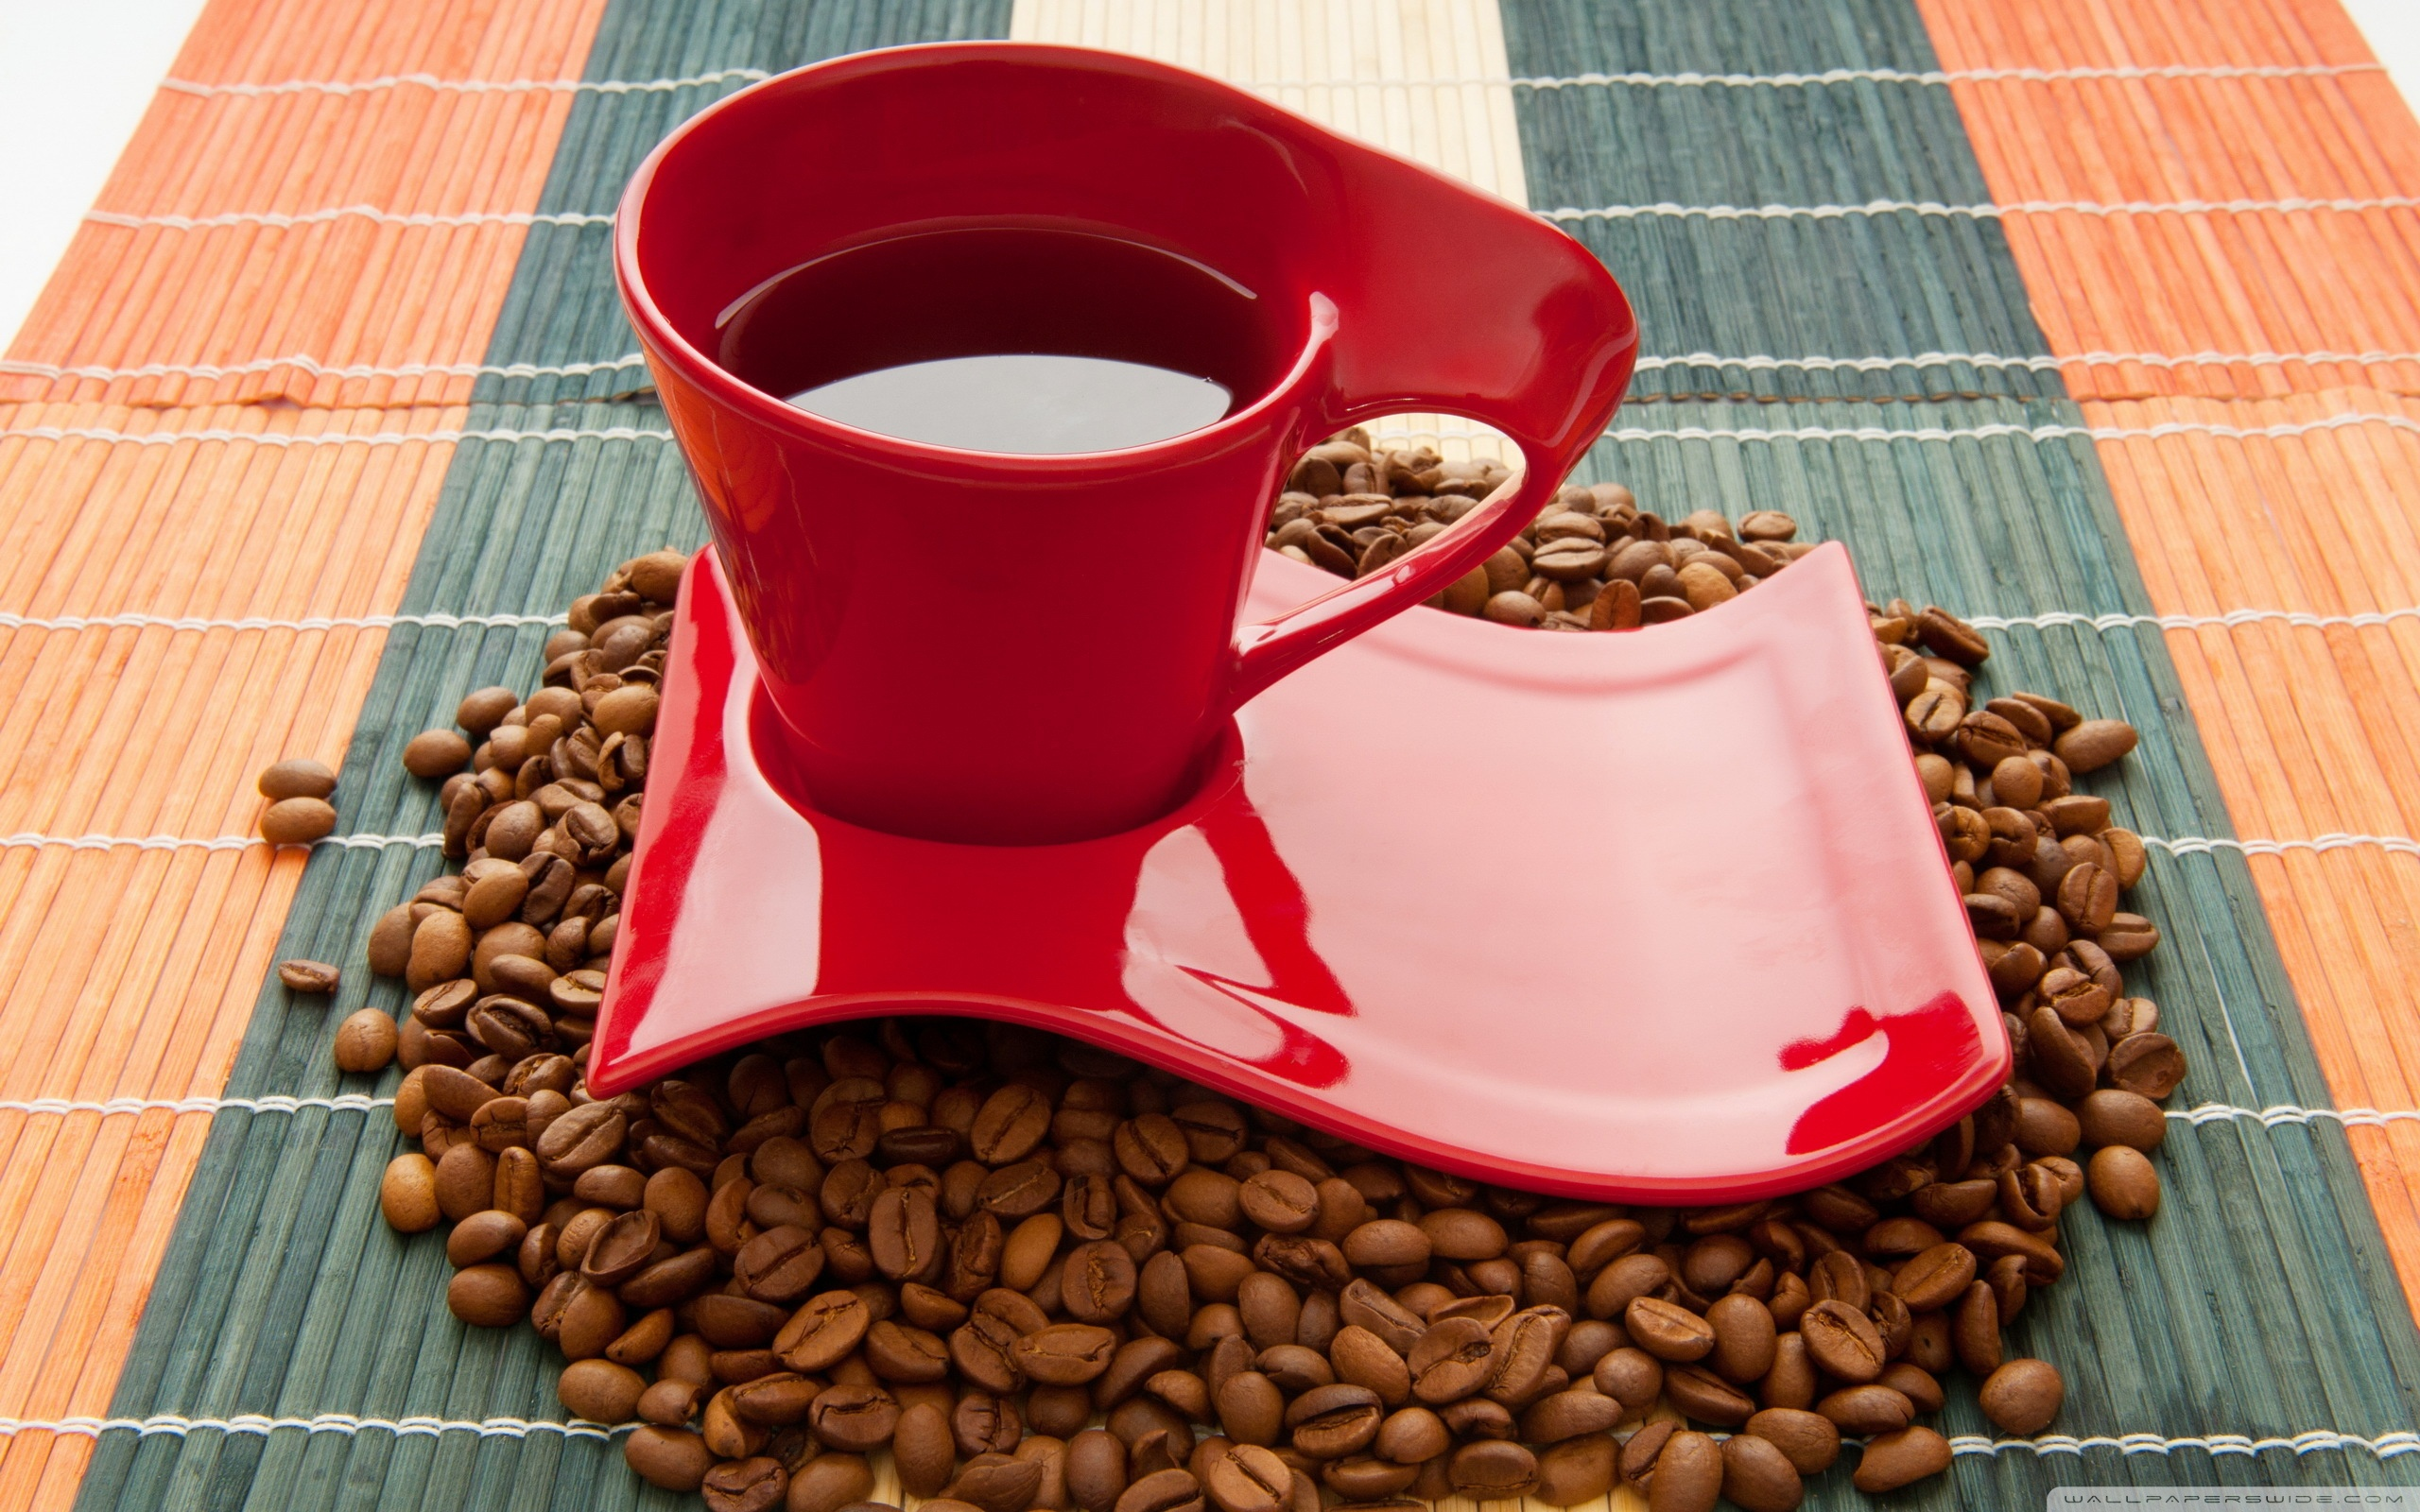 Red Coffee Cup Wallpaper   Cups and Dishes Wallpaper 28466310 2560x1600